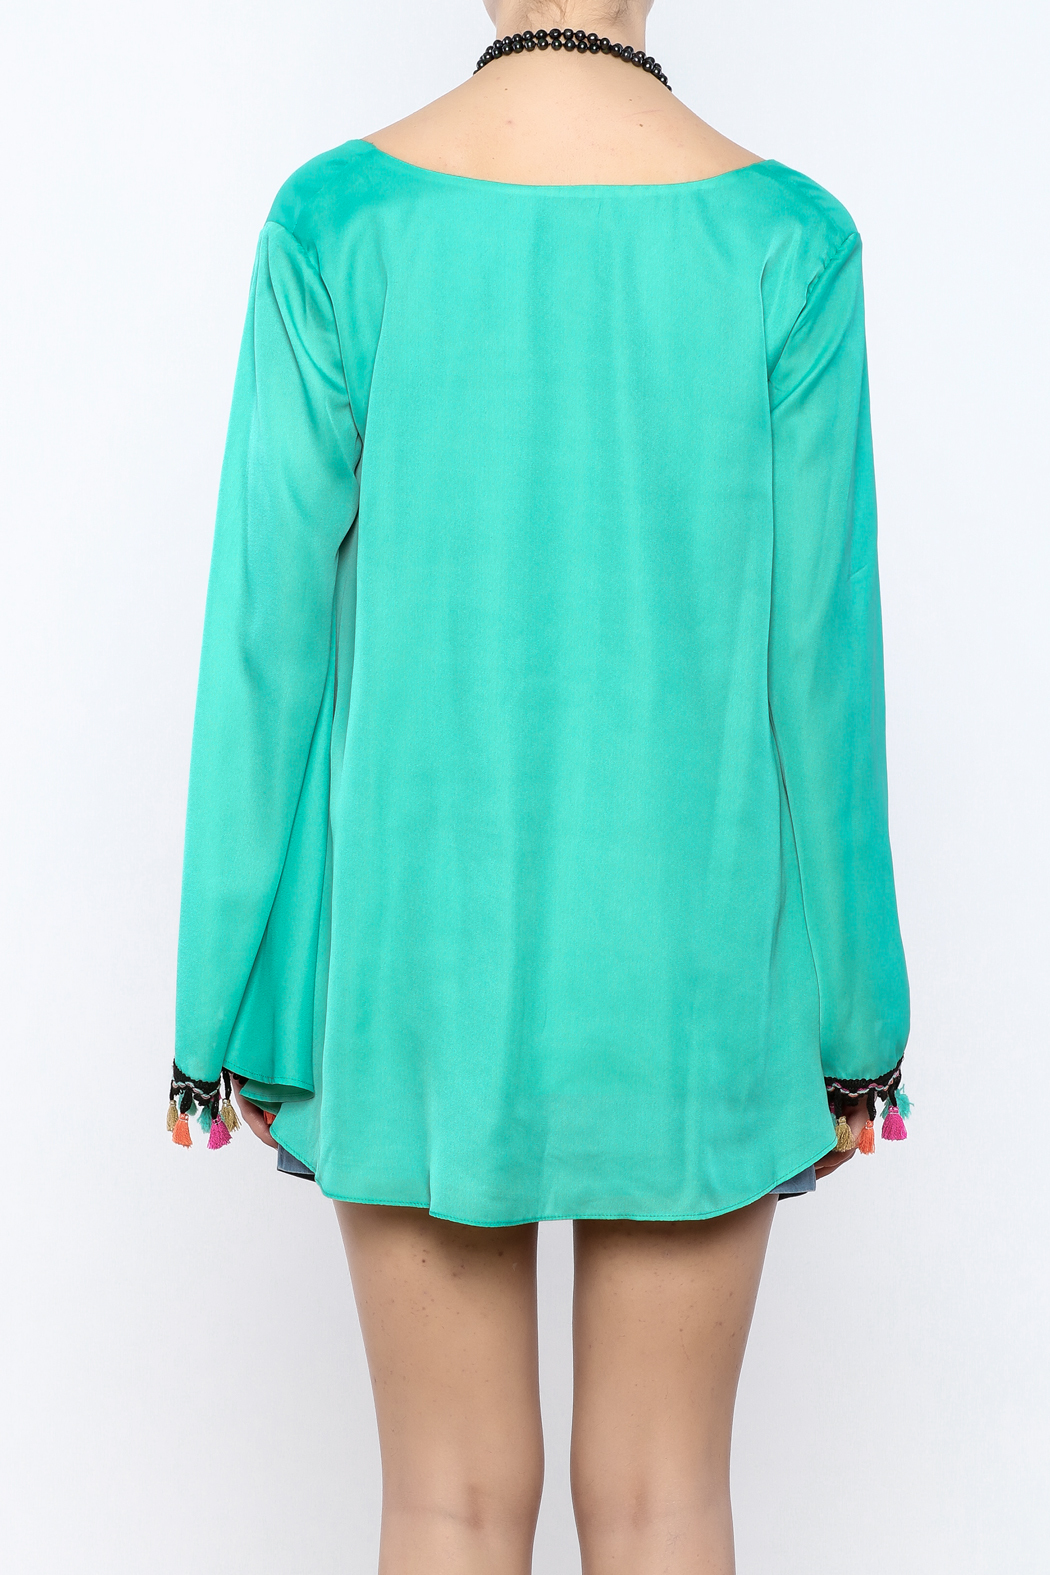 Judith March Festive Bell-Sleeved Top - Back Cropped Image